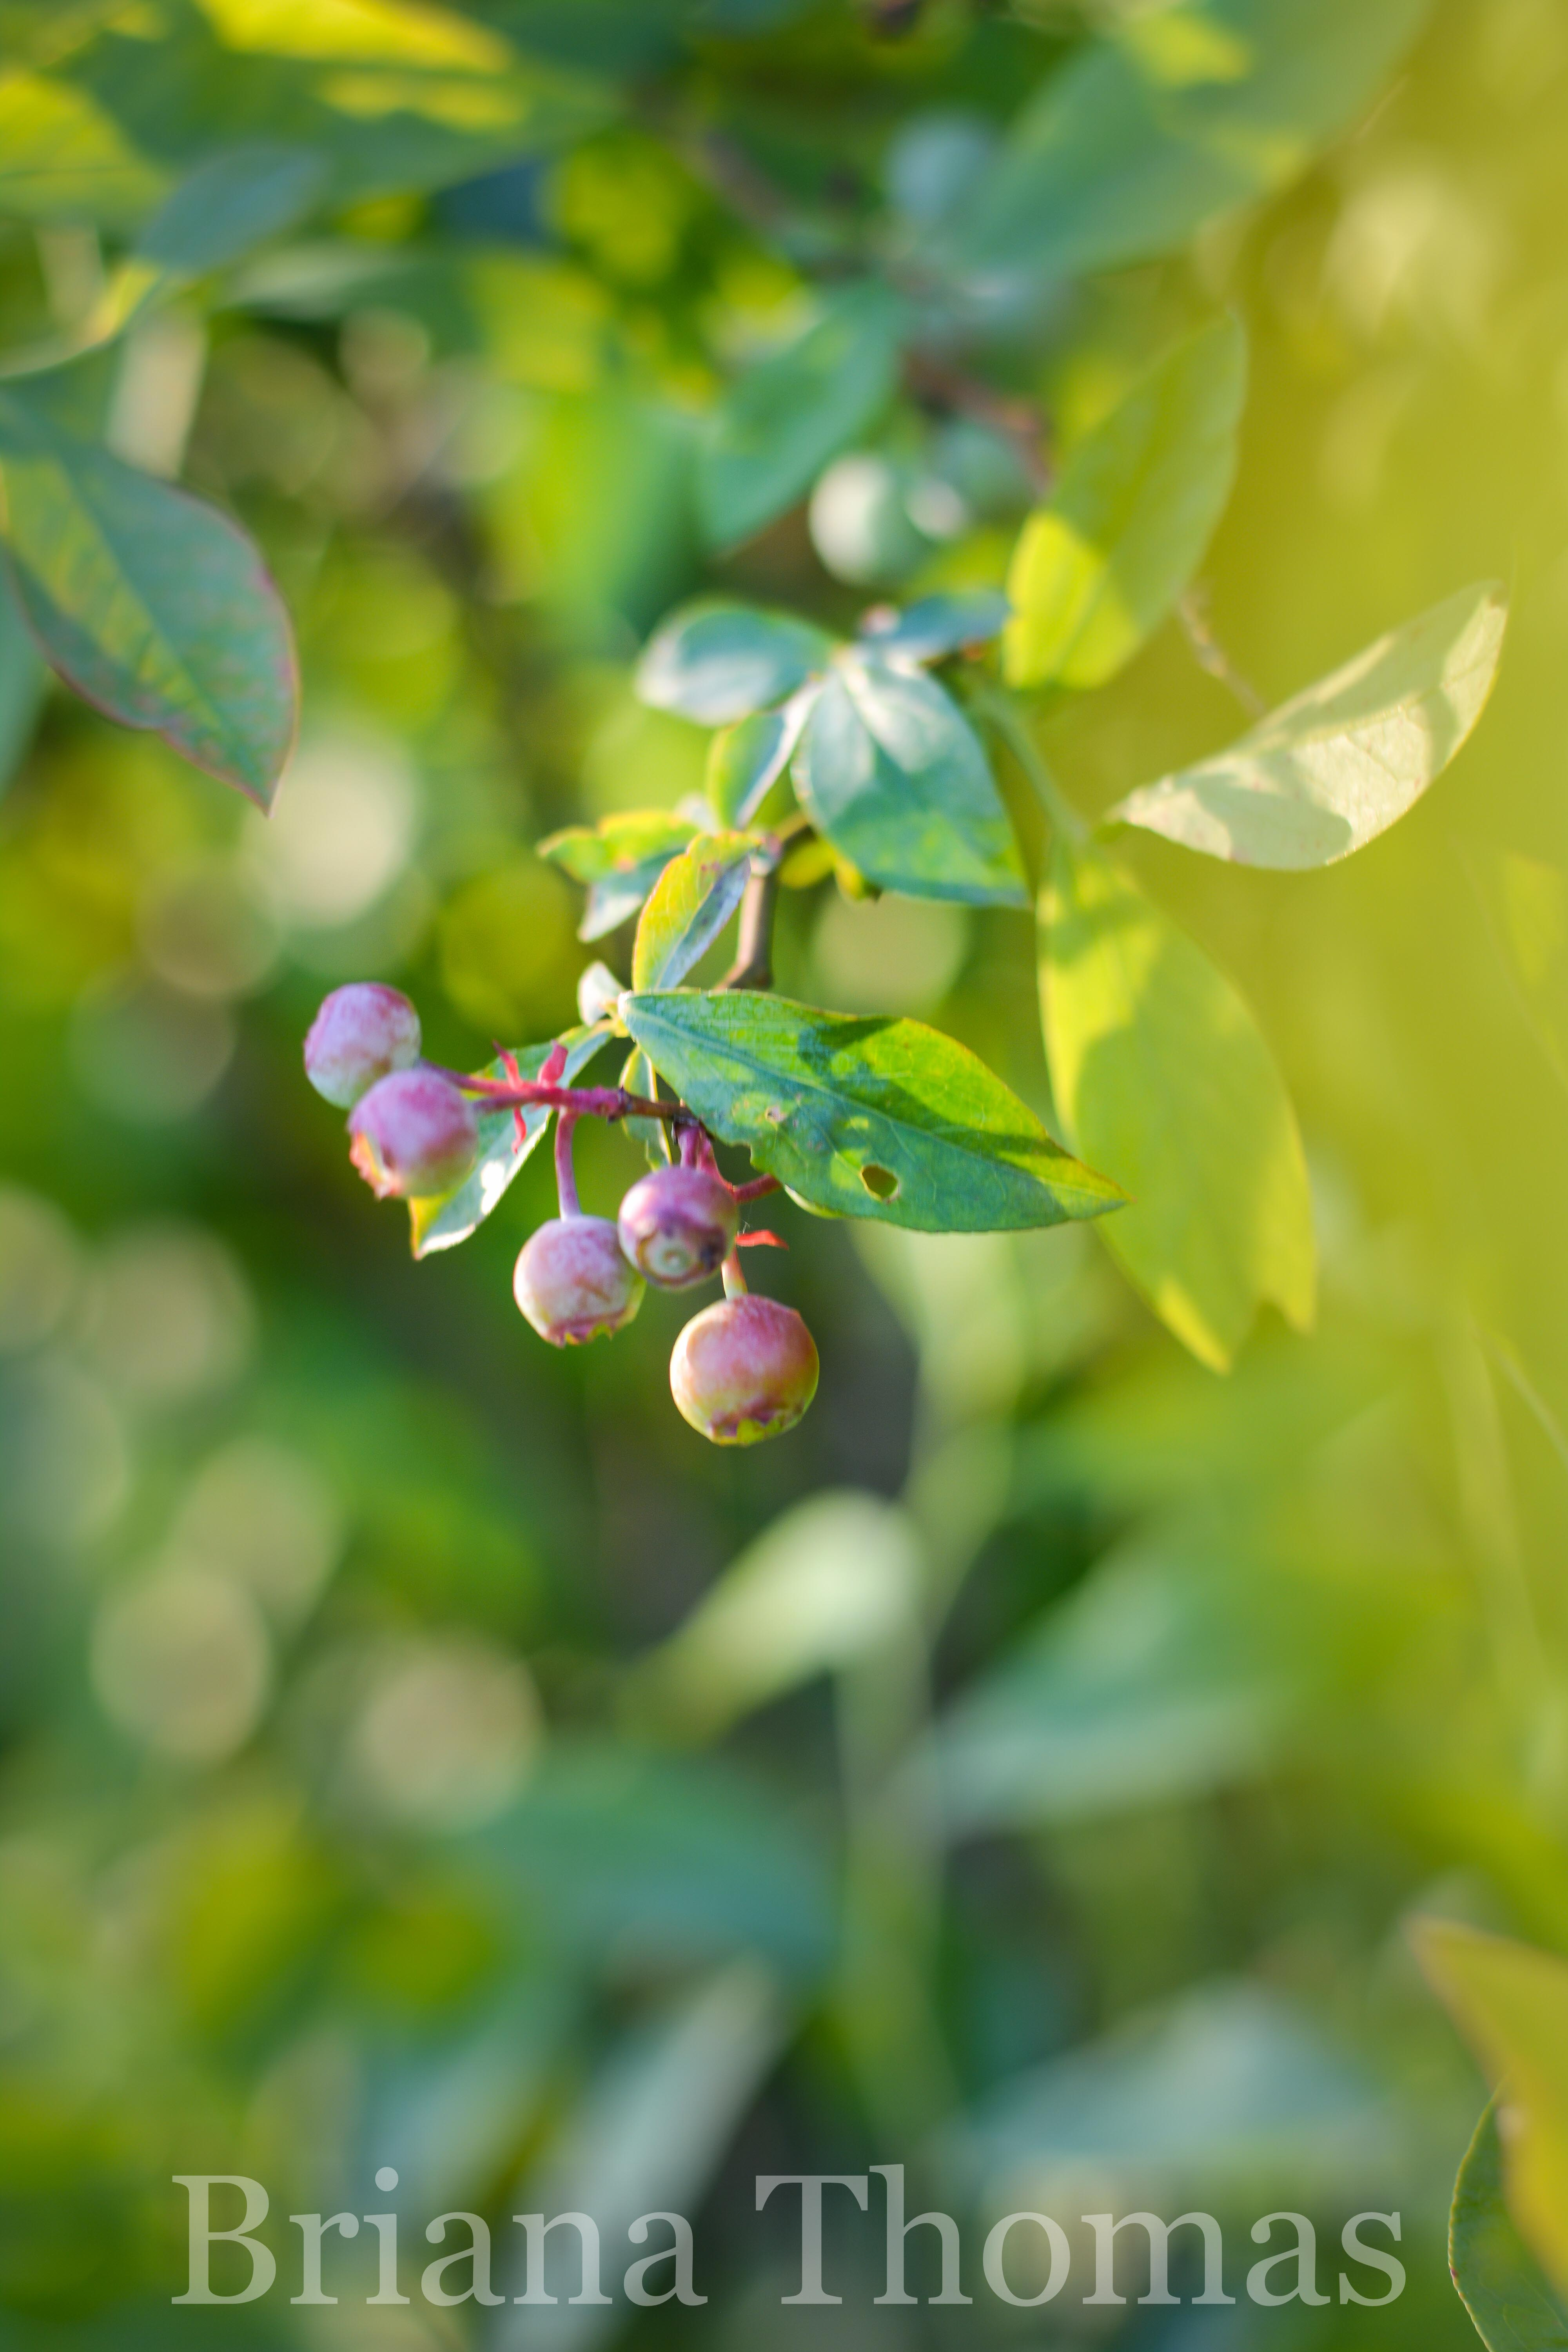 Up on the blog today - honeysuckle treasures and John Donne poetry.  Golden light of nature and literature for edification and encouragement!